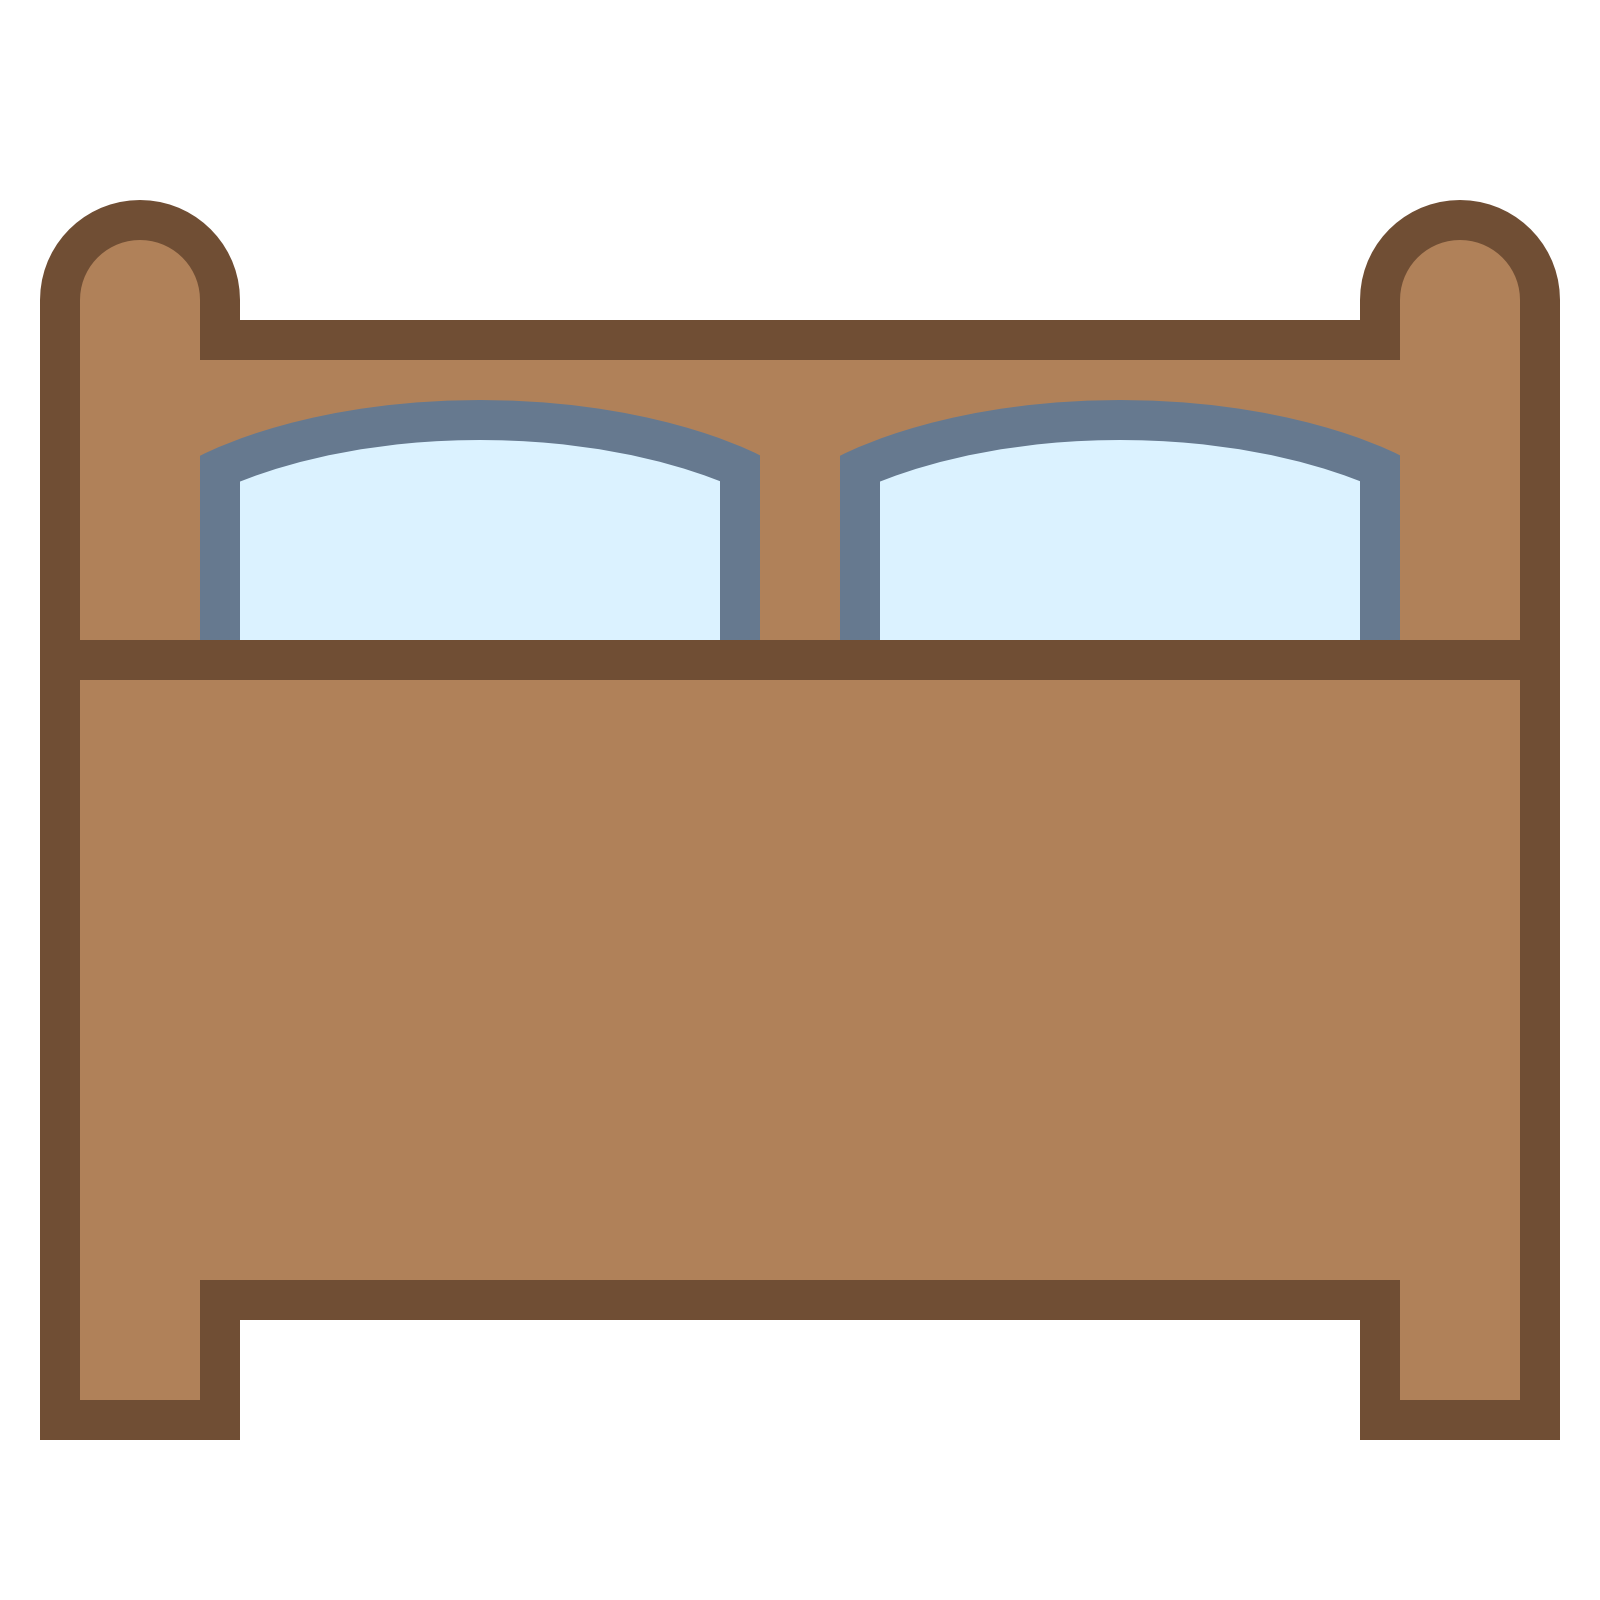 Living room images poetry. Clipart bed icon